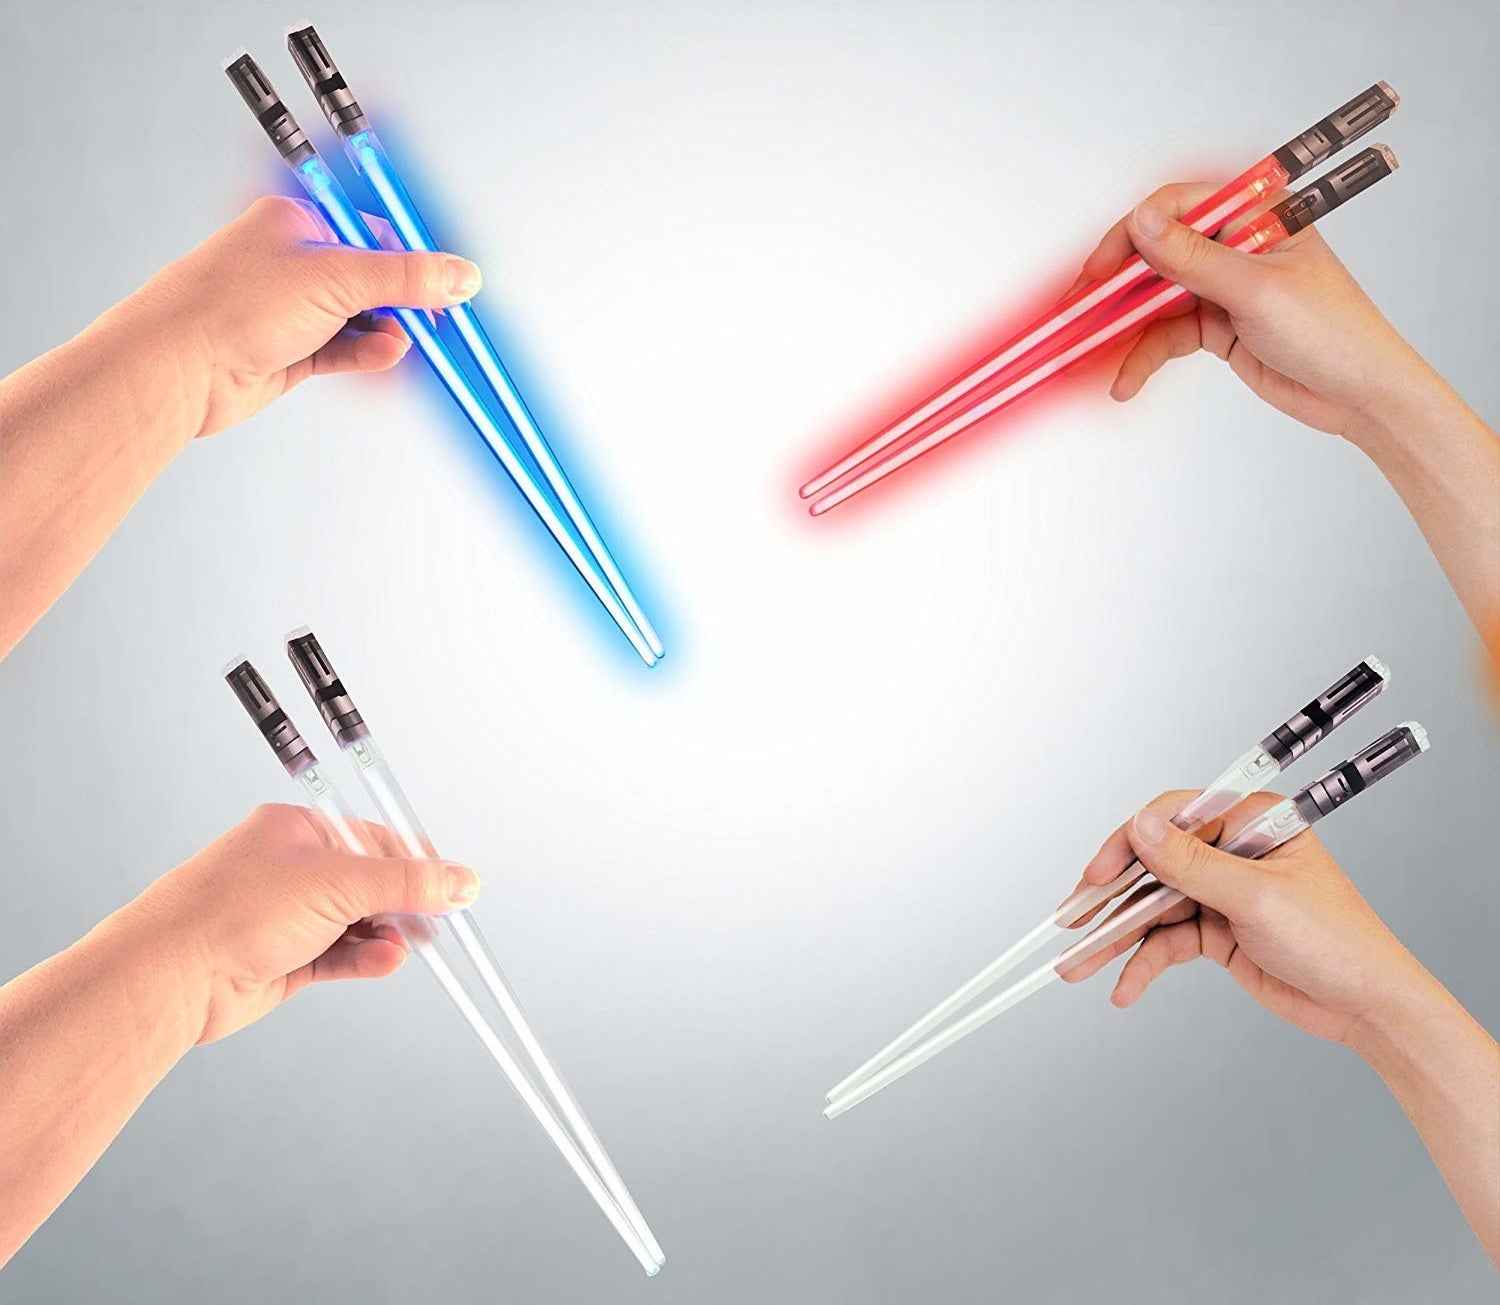 models holding chops sticks that look like lightsabers